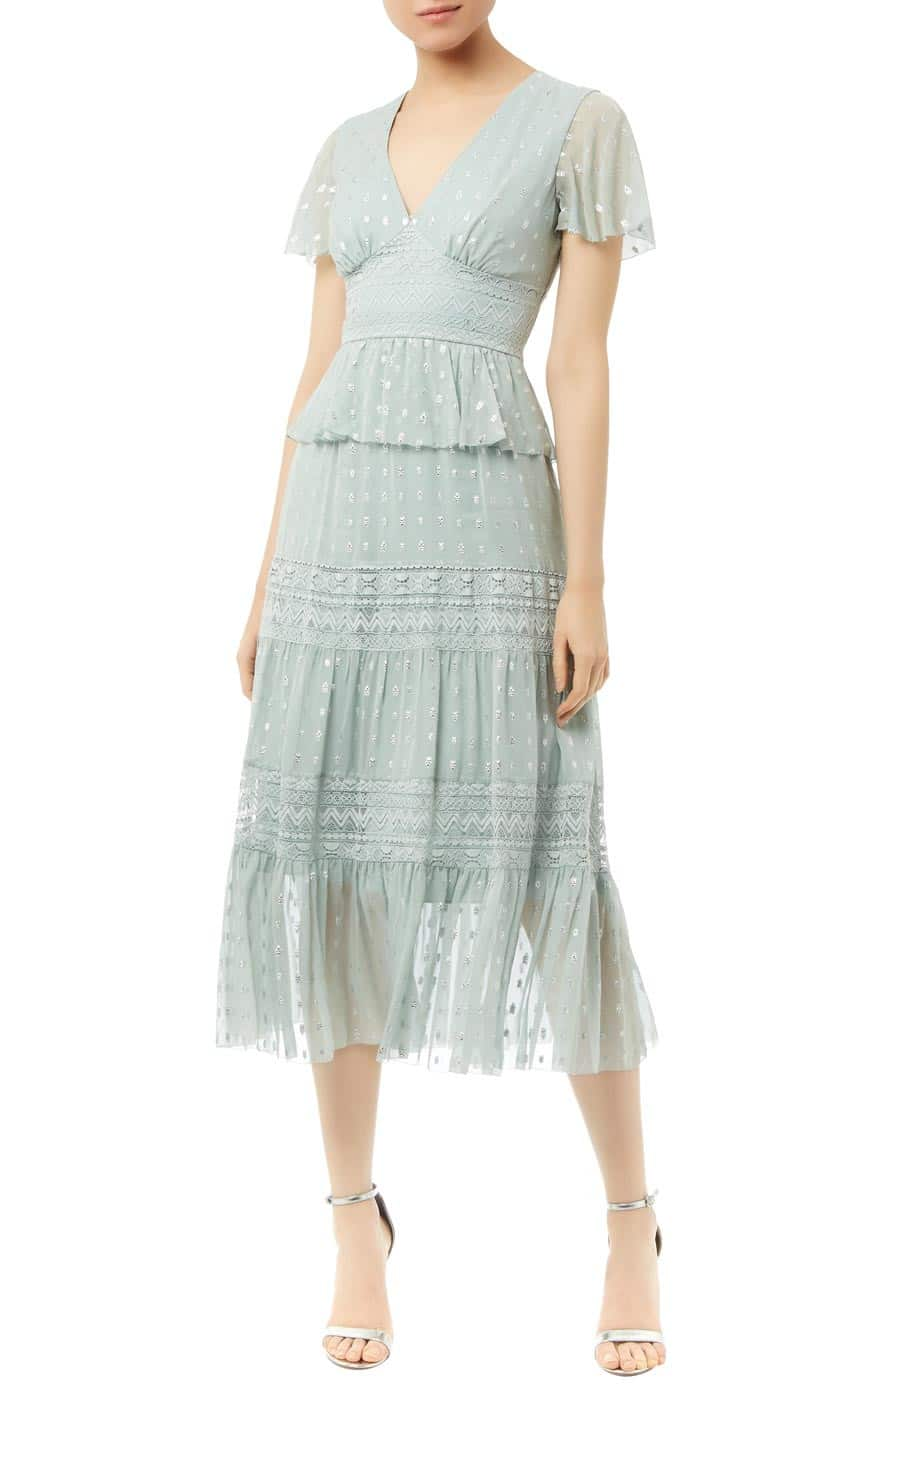 Temperleylondon Wondering Lace Green Dress